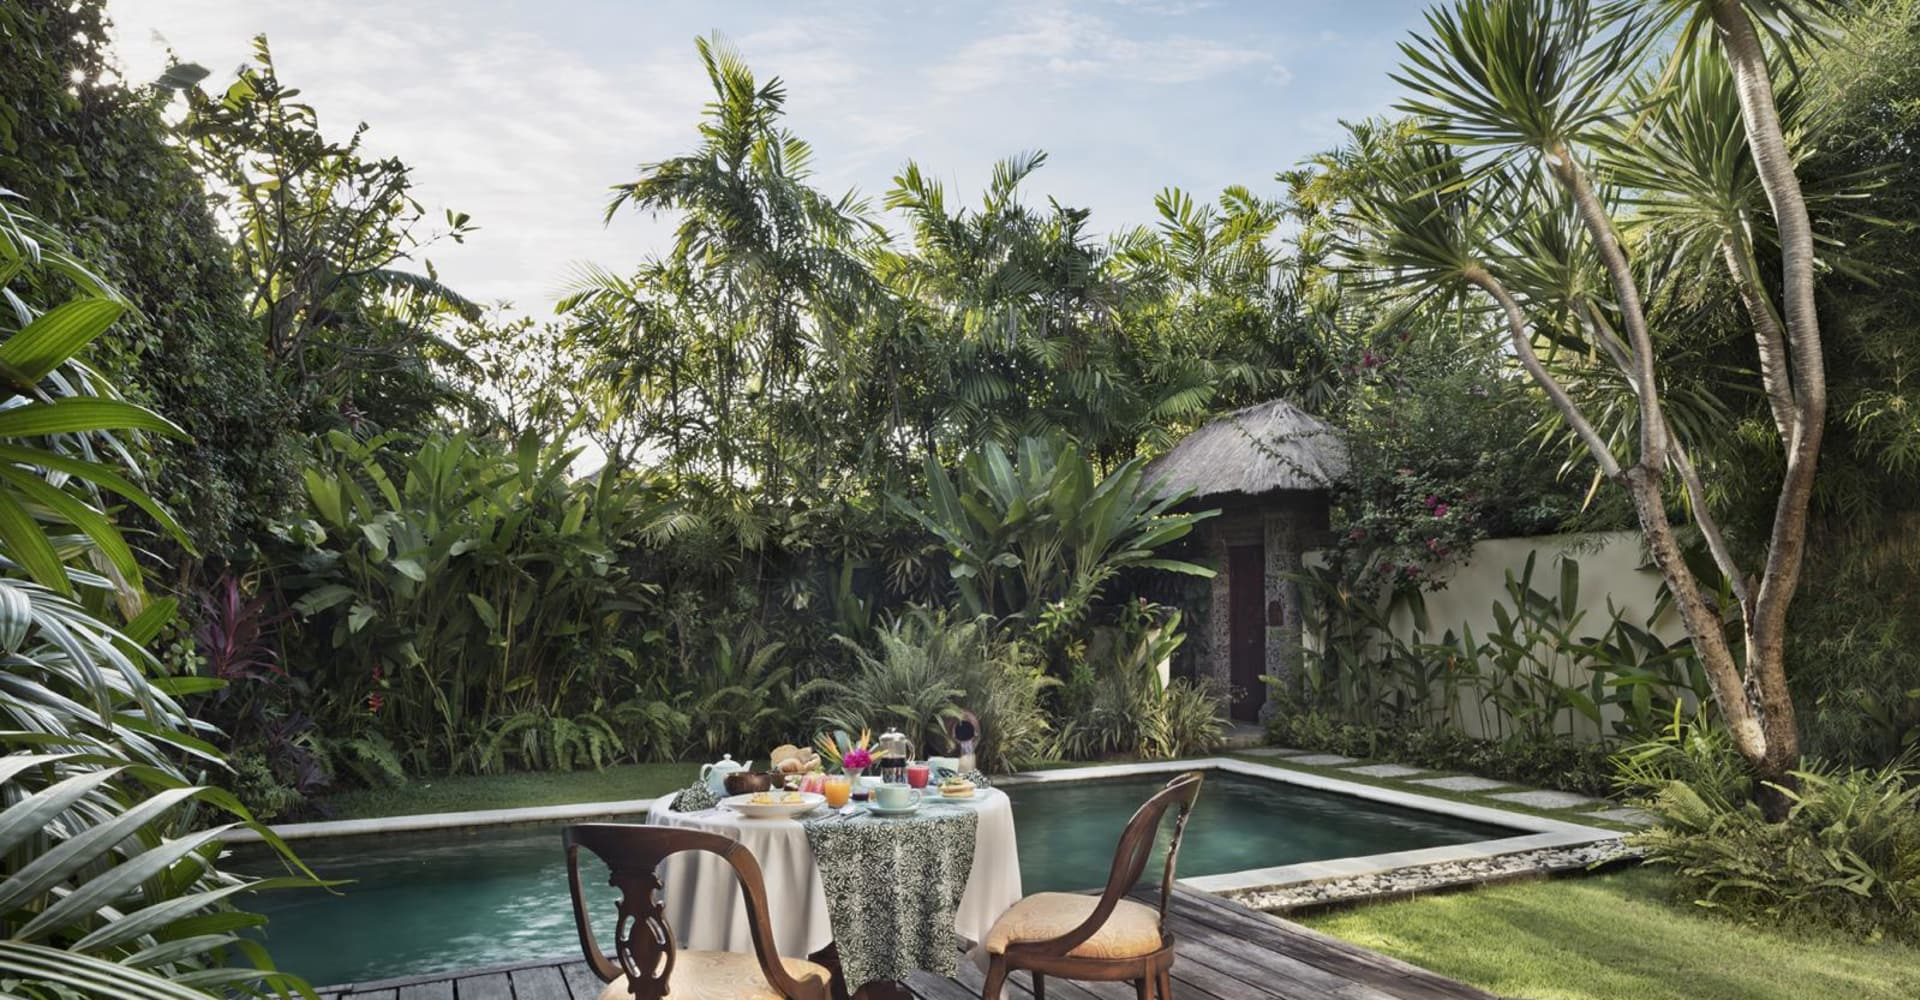 Romance Destination - The Pavilions Bali